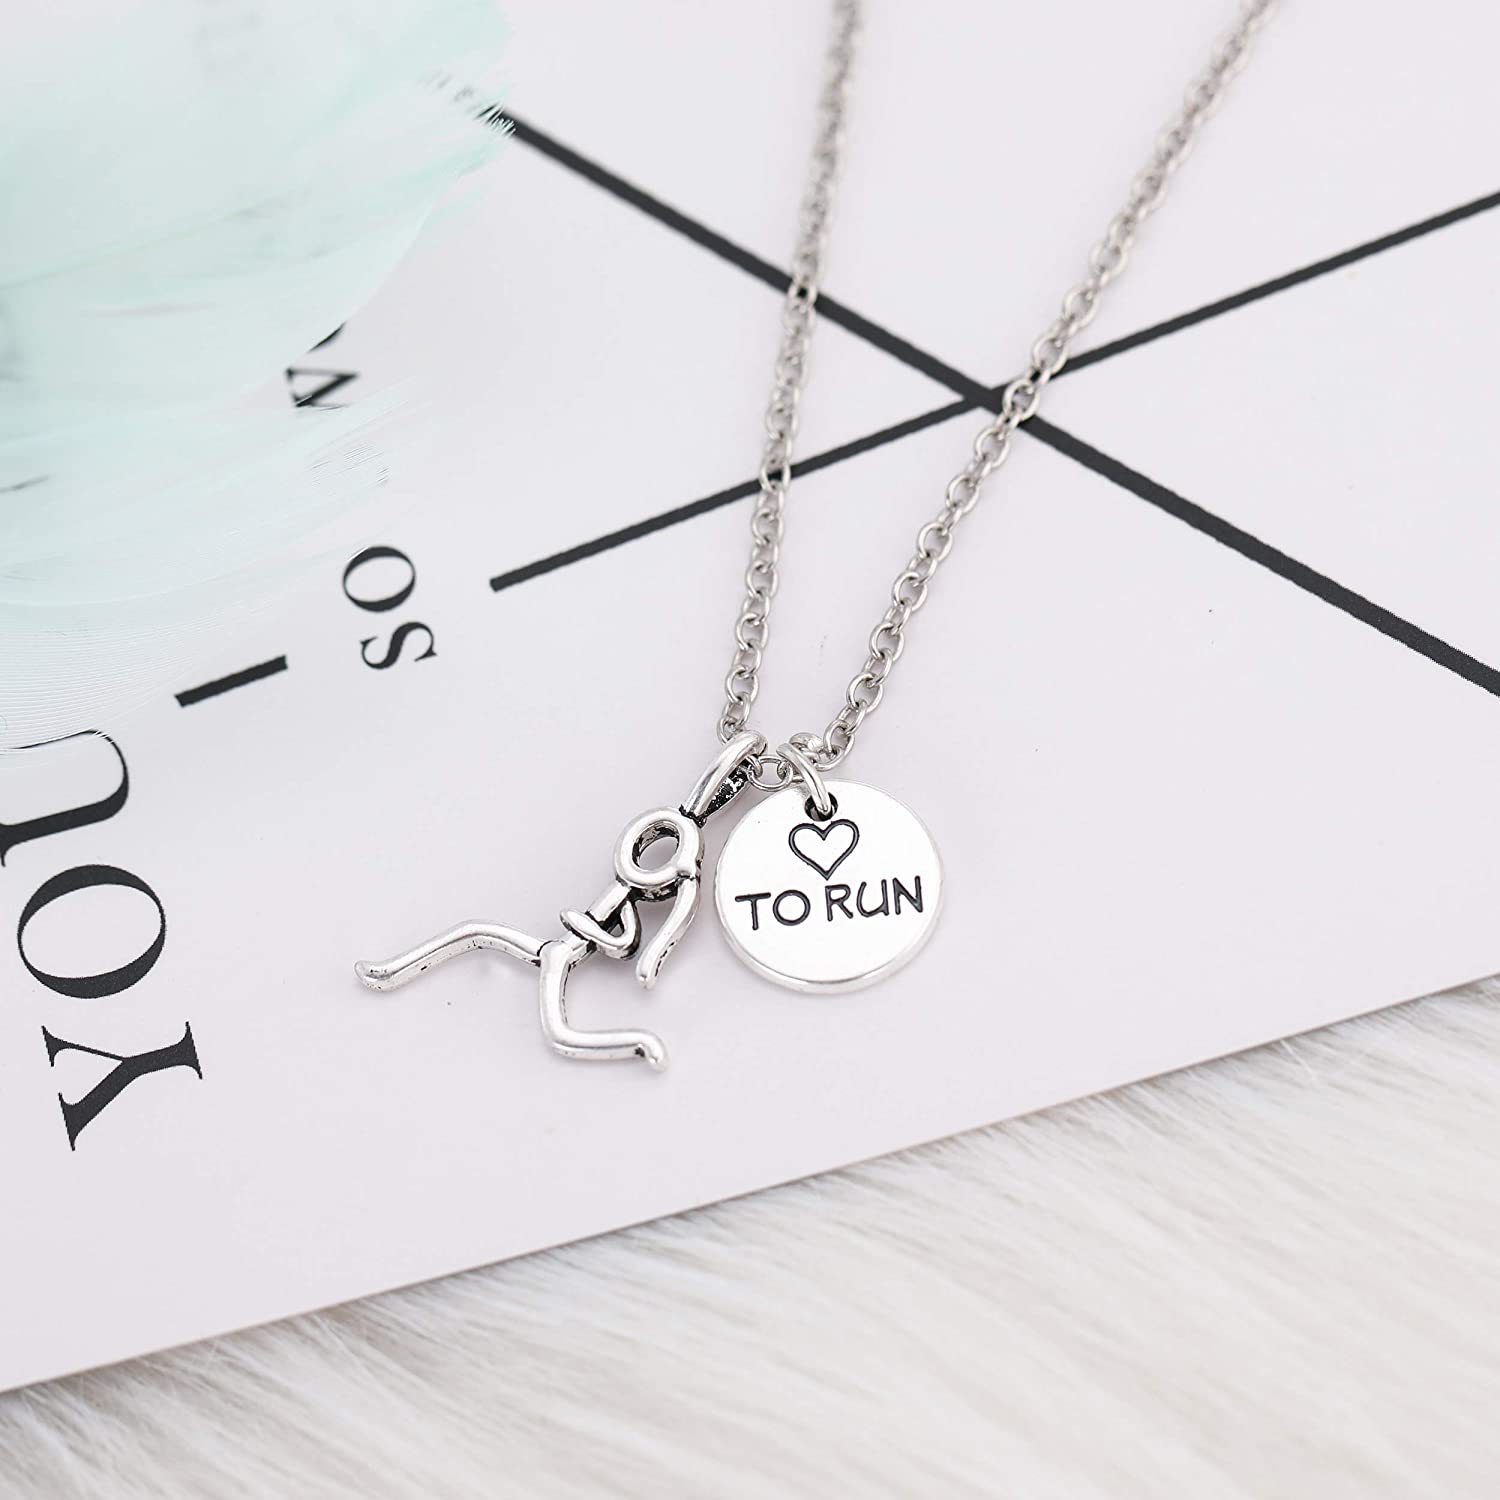 Silver Running Jewelry Pendant Gift for Marathon Runner Present Athlete Jewelry Personalized Initial Birthstone letter Love to Run Necklace